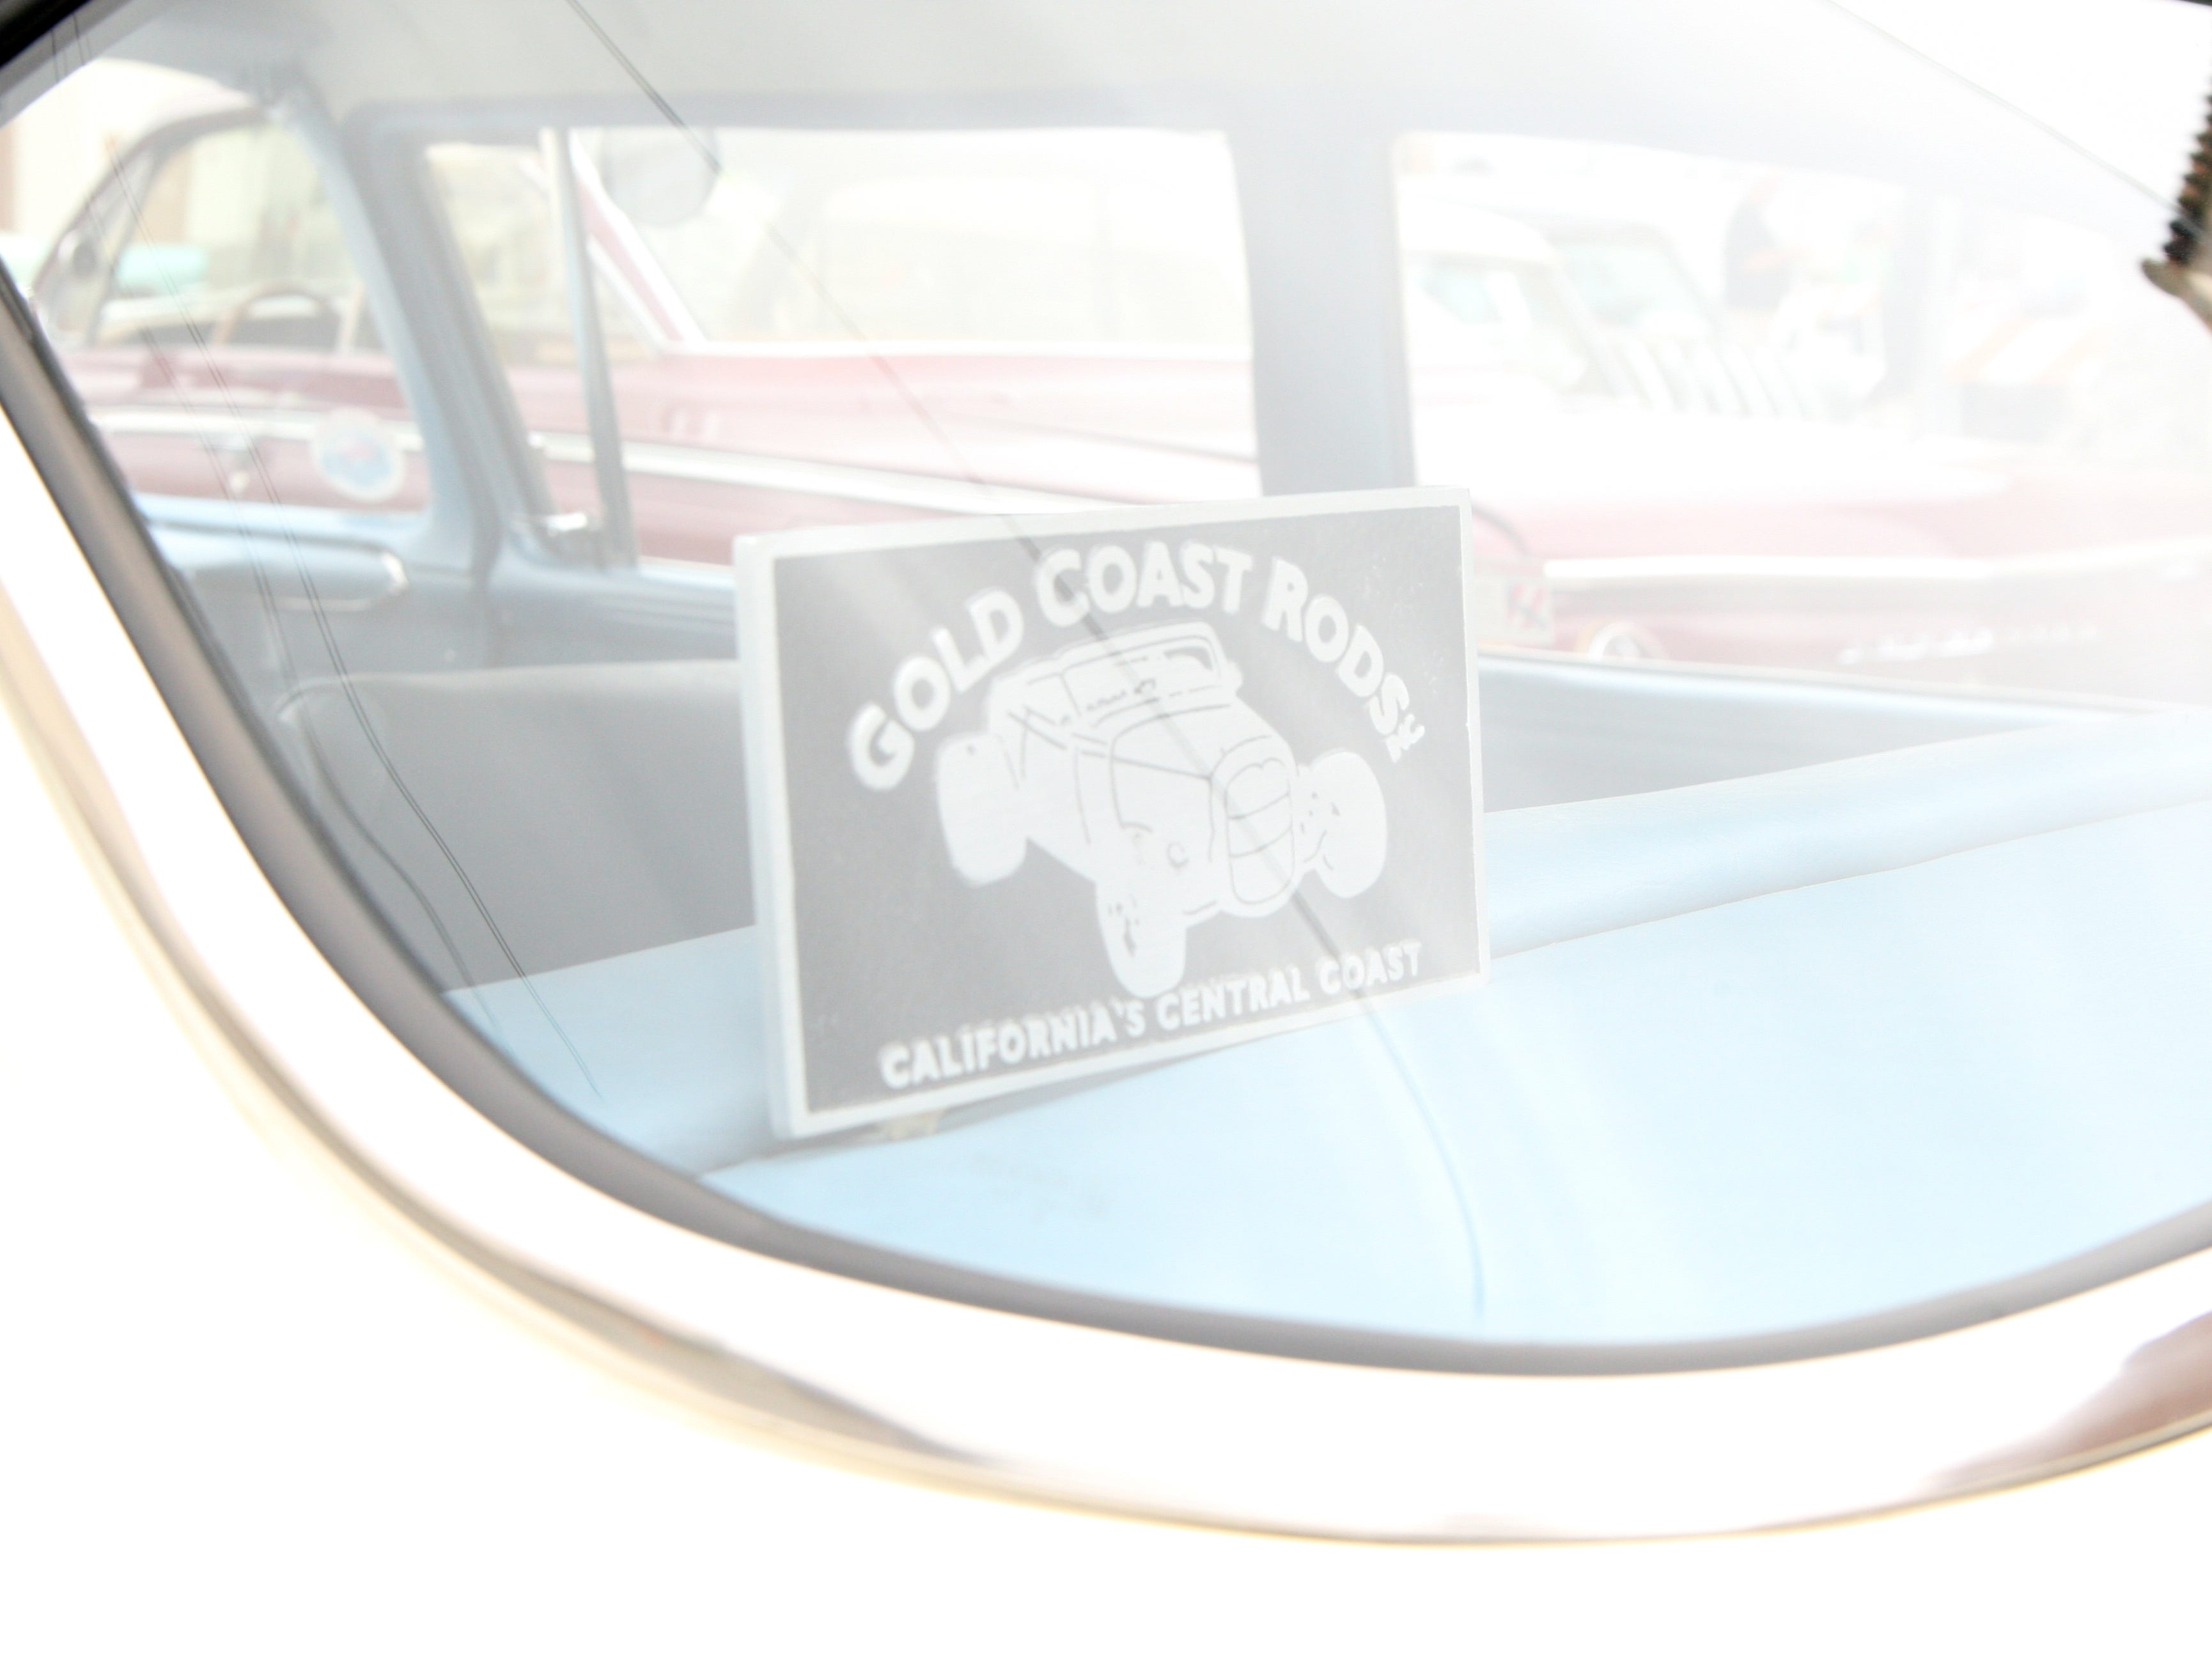 Some of the cars at the car show belonged to members of Gold Coast Rods, located in Monterey. April 27, 2019.